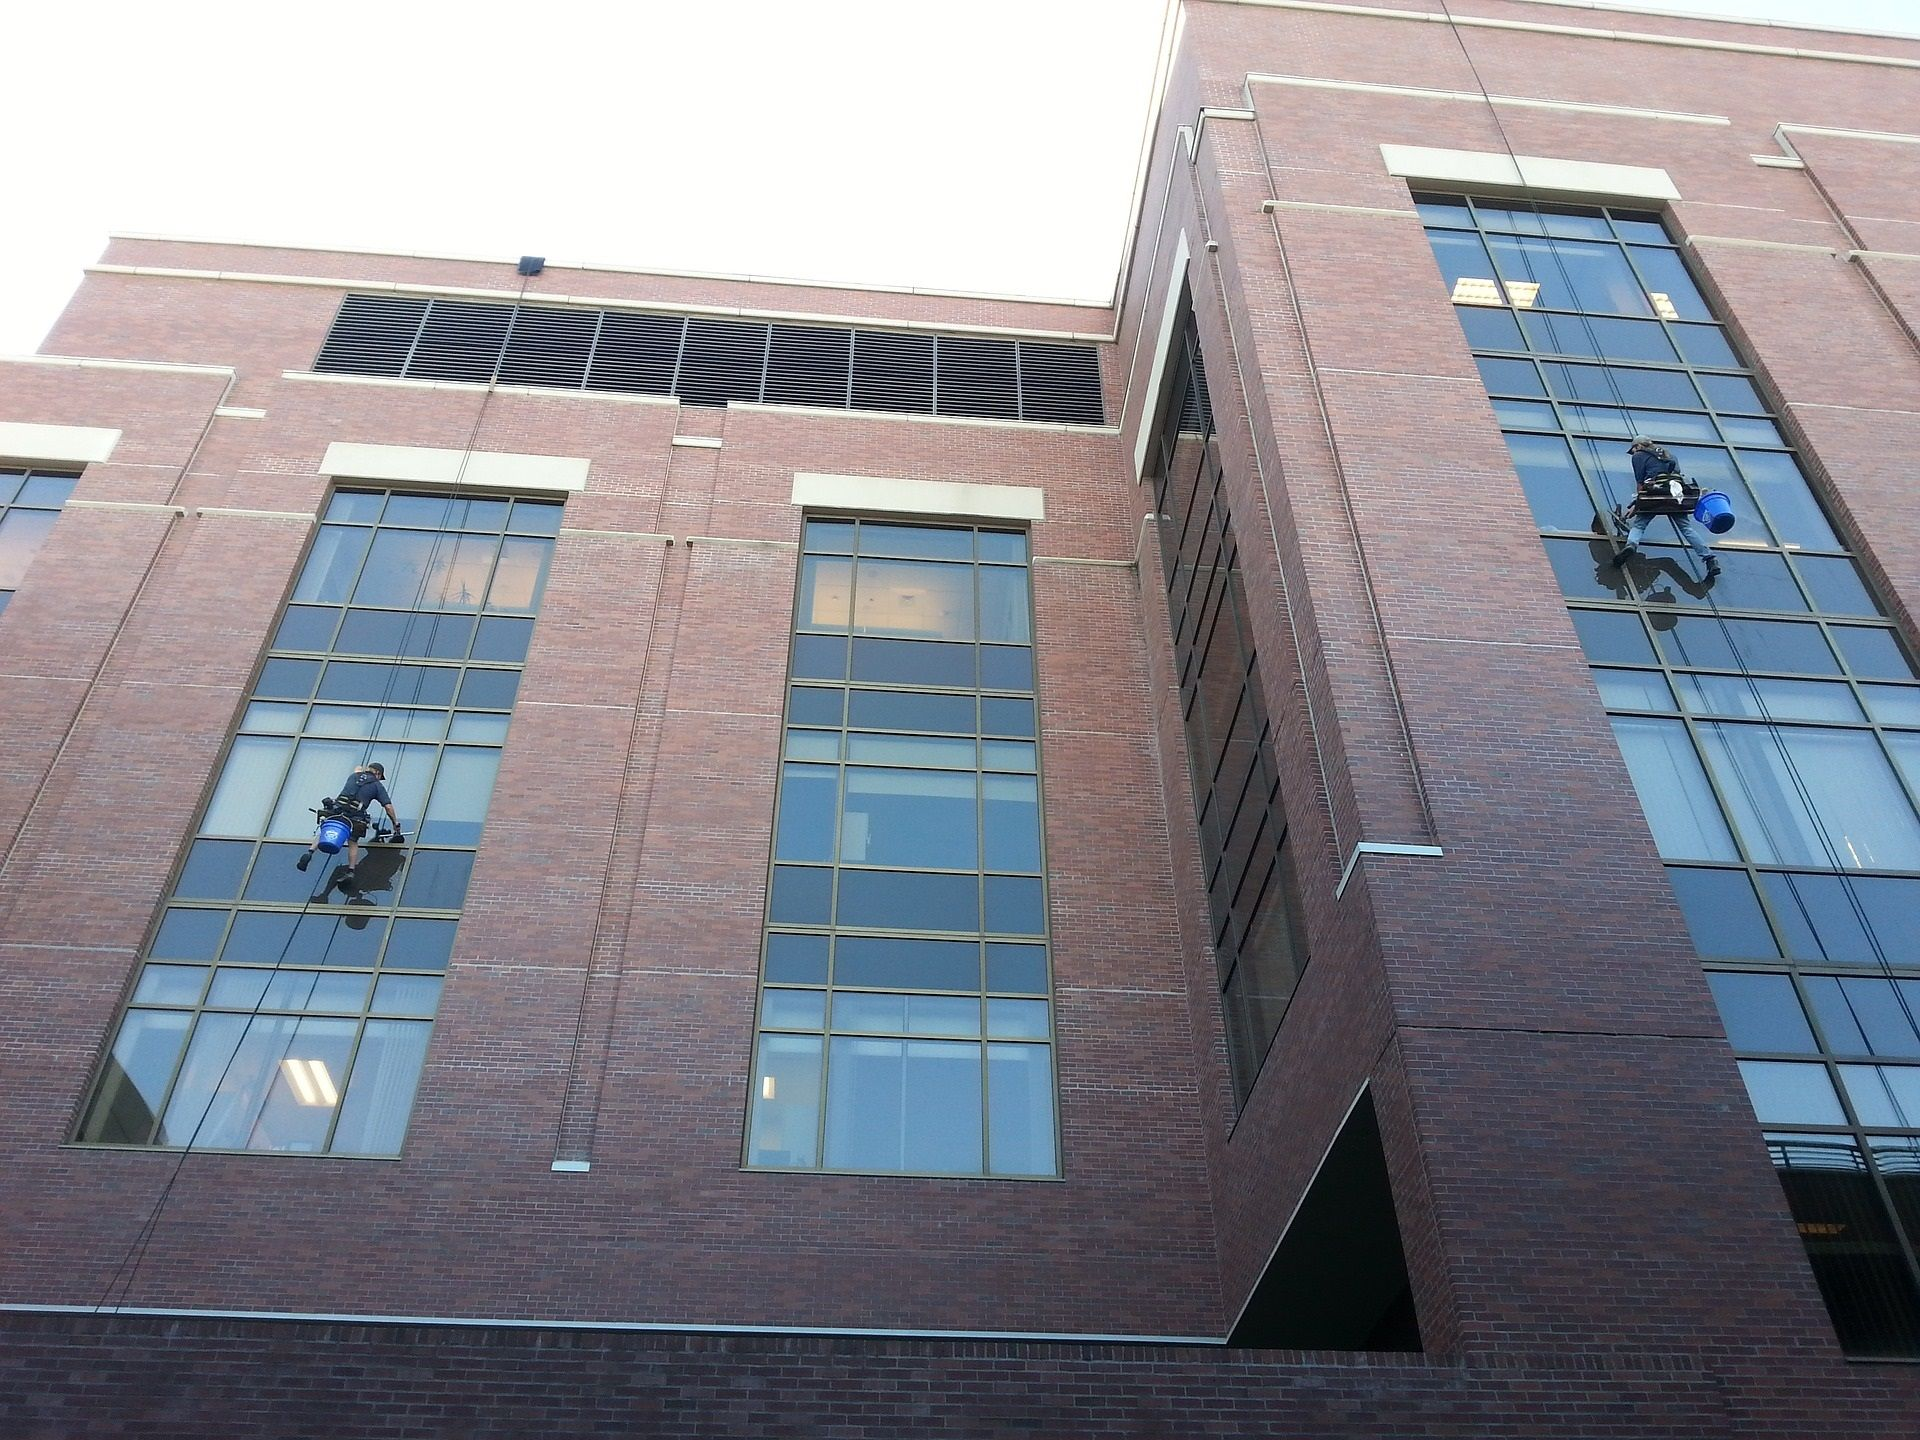 k-window-cleaners-943047_1920